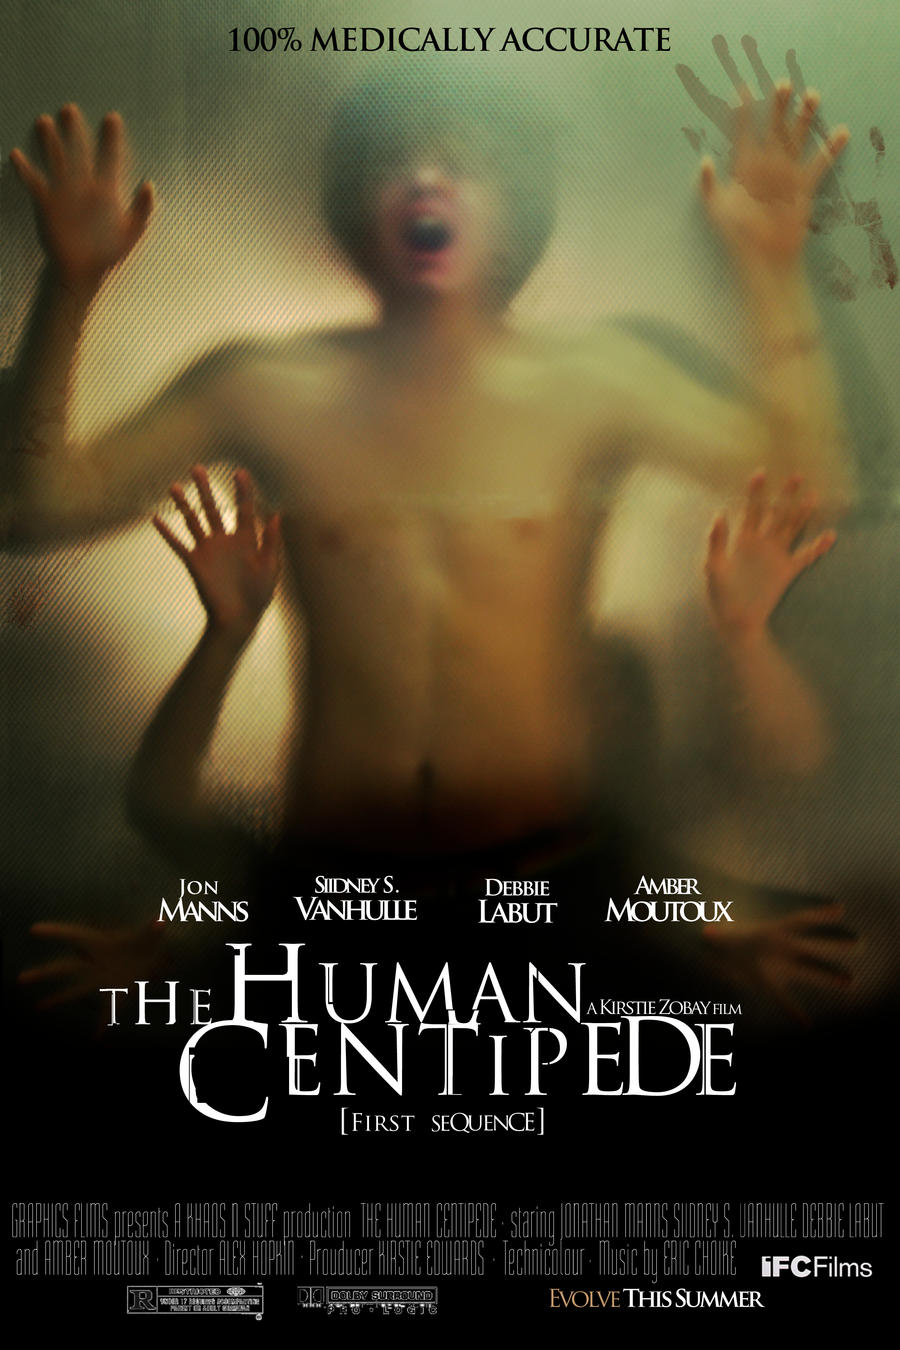 Human Centipede Movie Poster by KittyKit27Human Centipede Movie Poster